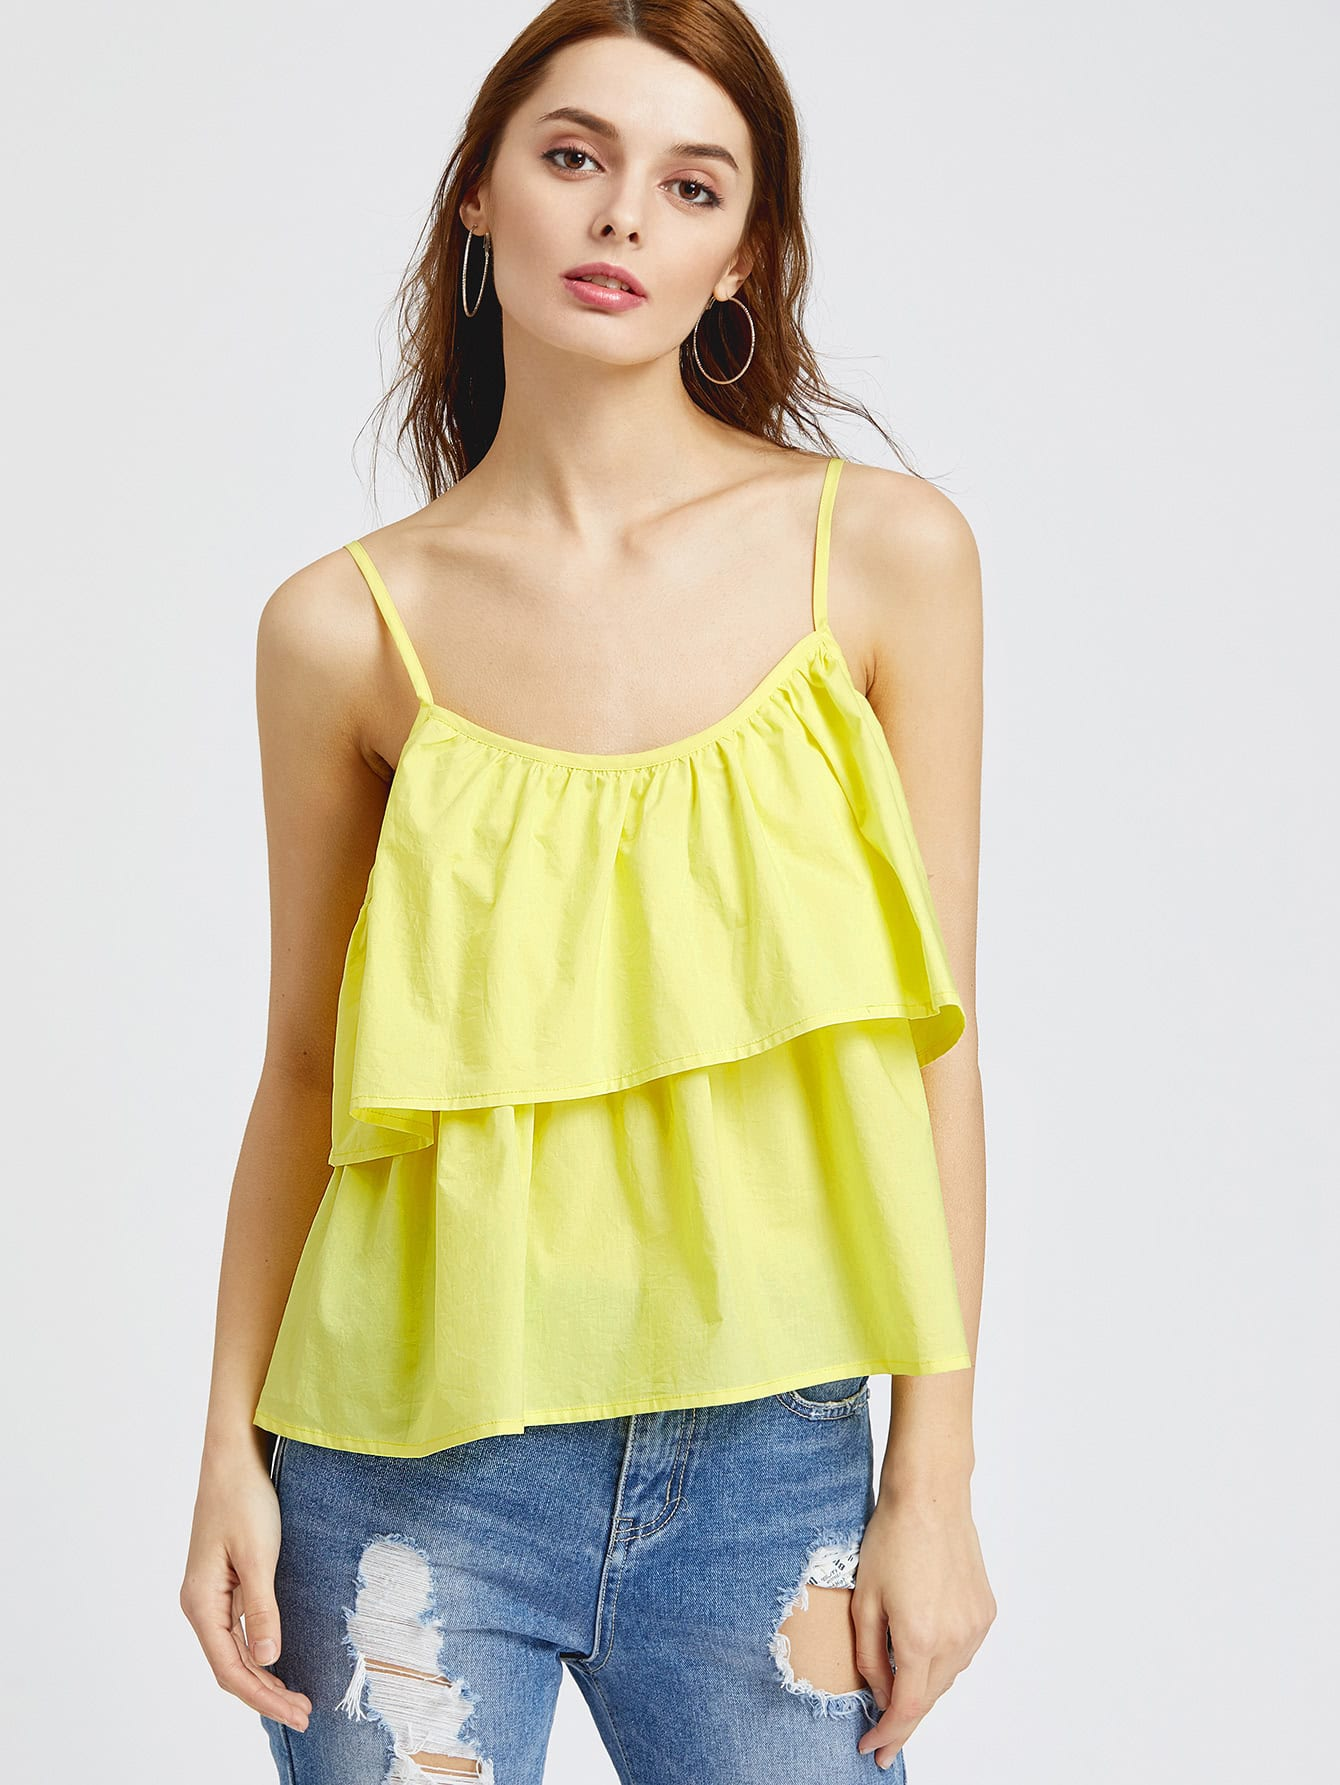 Shop for yellow cami tops online at Target. Free shipping on purchases over $35 and save 5% every day with your Target REDcard.